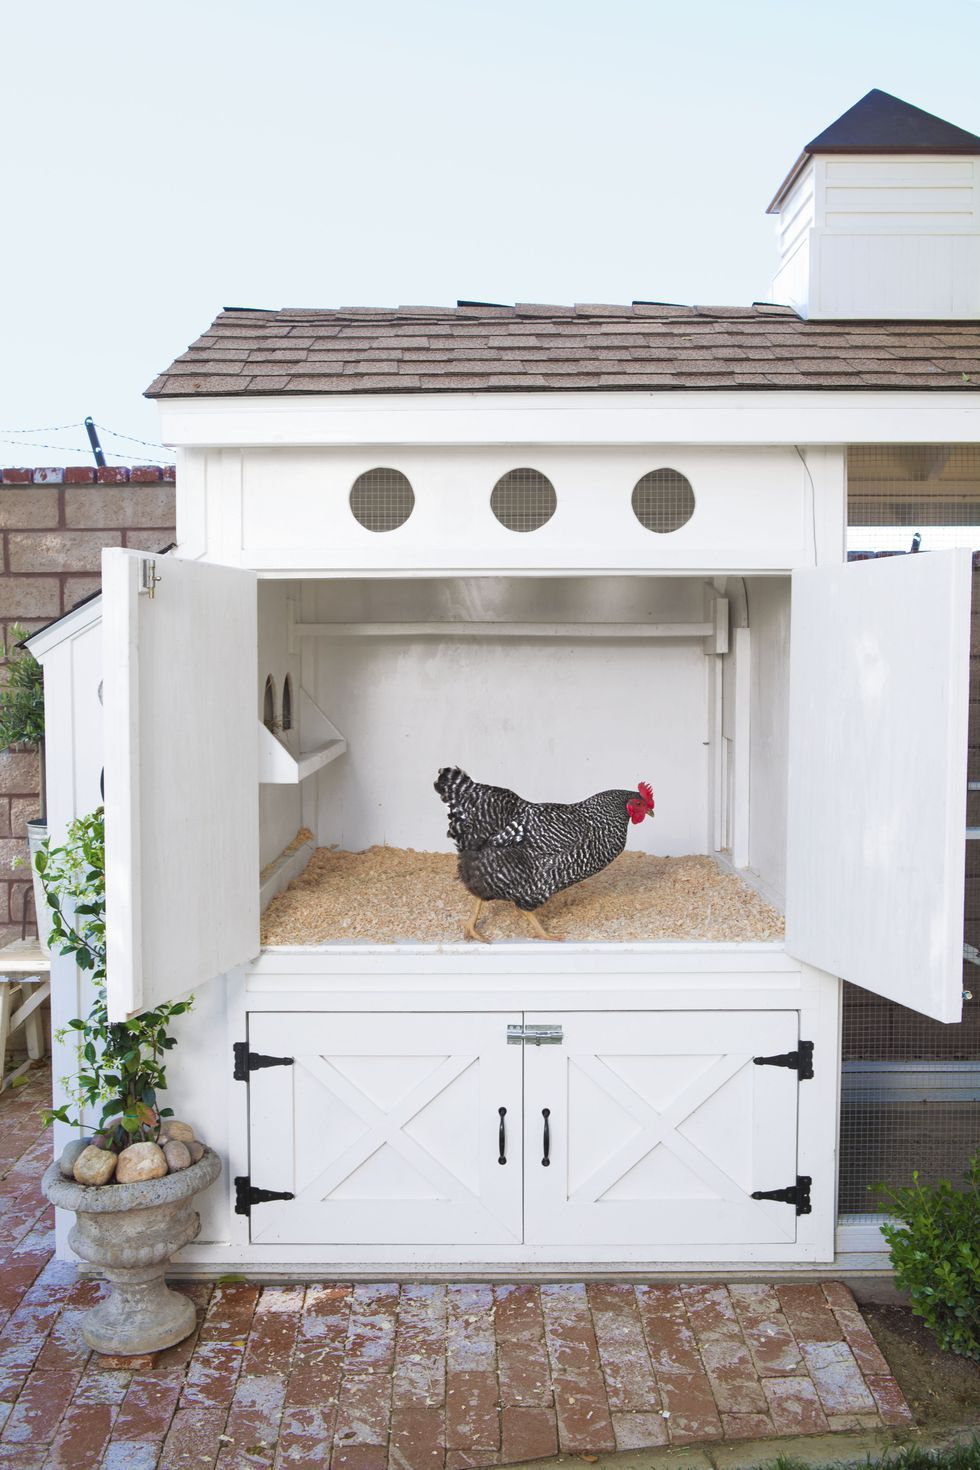 22 Low Budget Diy Backyard Chicken Coop Plans: Build The Ultimate Chicken Coop With These Easy Plans